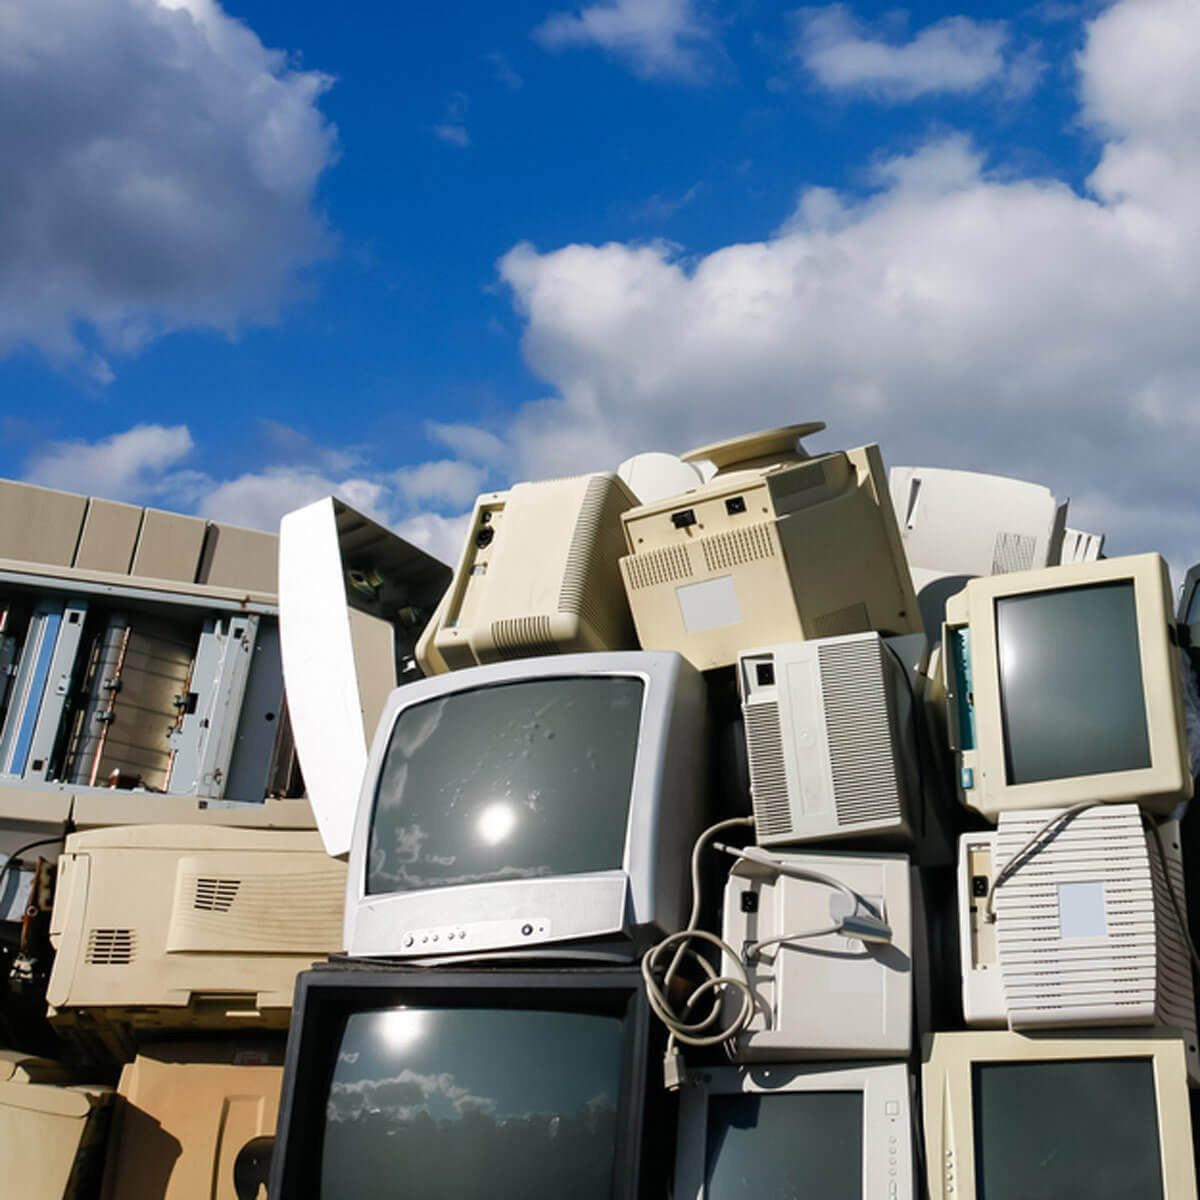 10 Things You Should Know About Recycling Electronics The Family Recycle Circuit Boards Concept Of Electronic Junk Waste For Or Safe Disposal